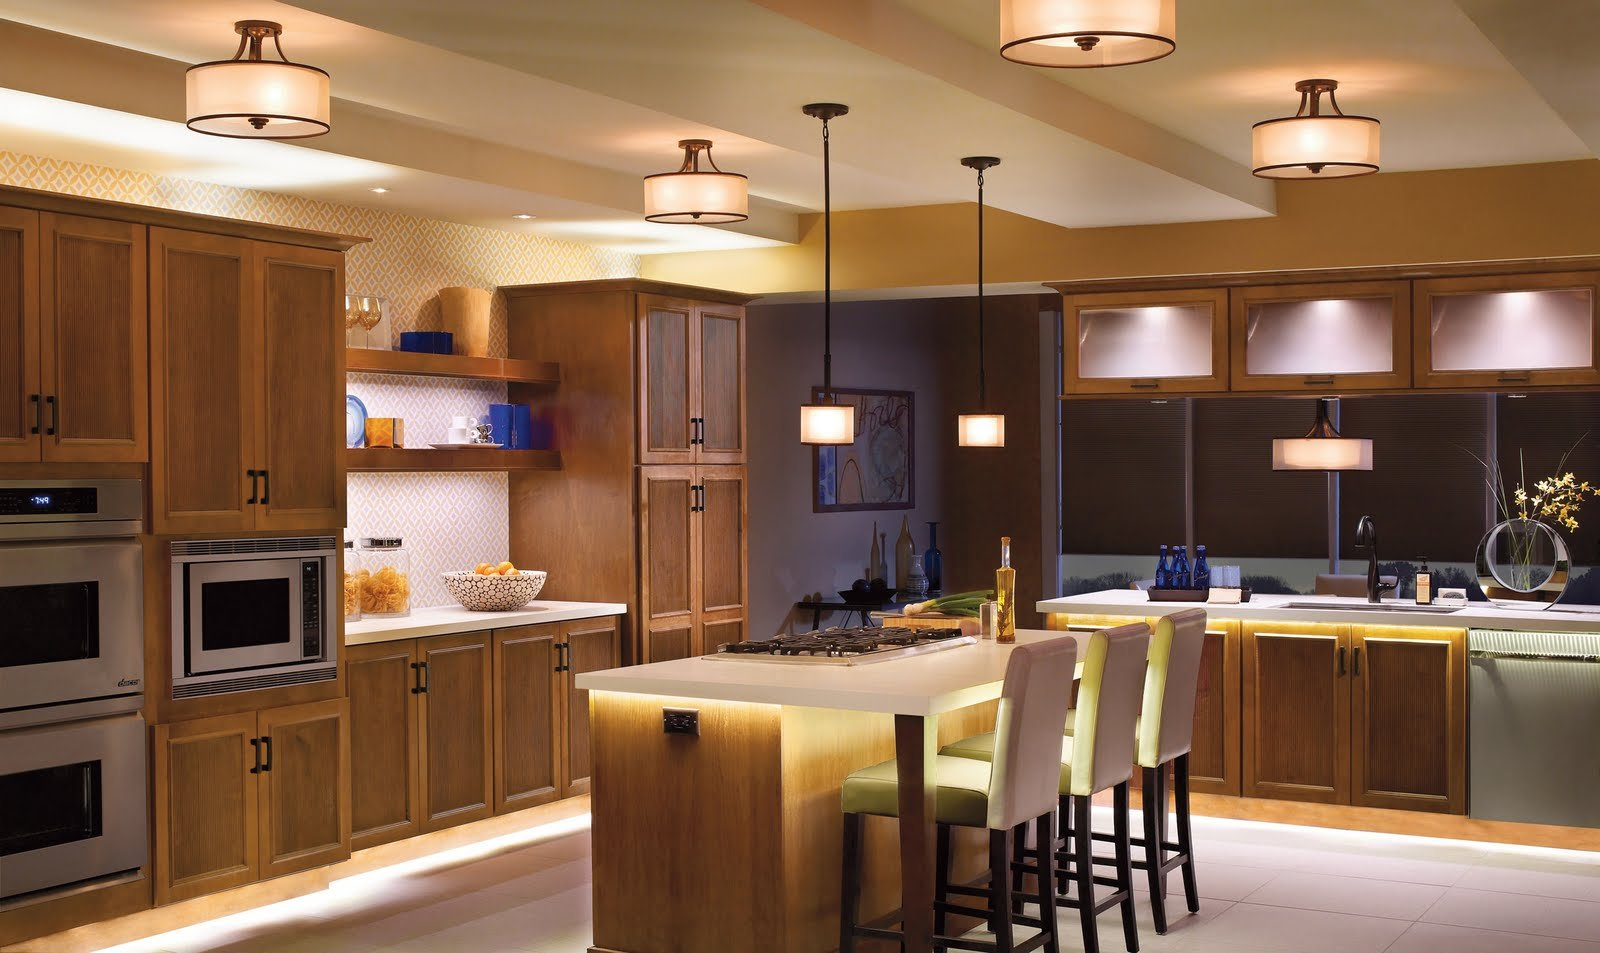 Kitchen Lighting Design 1600 x 953